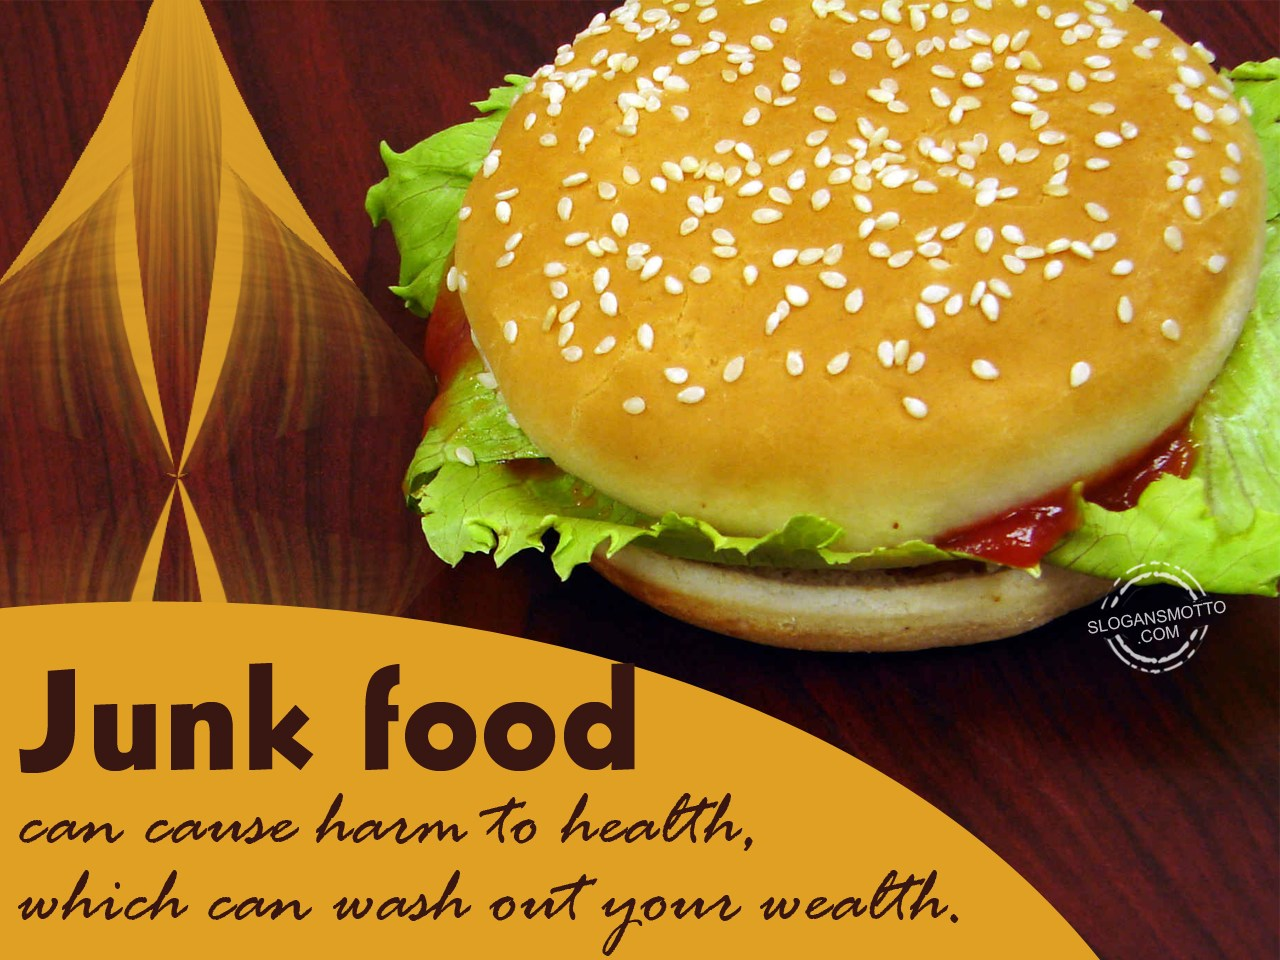 Quotes On Junk Food A Health Hazard